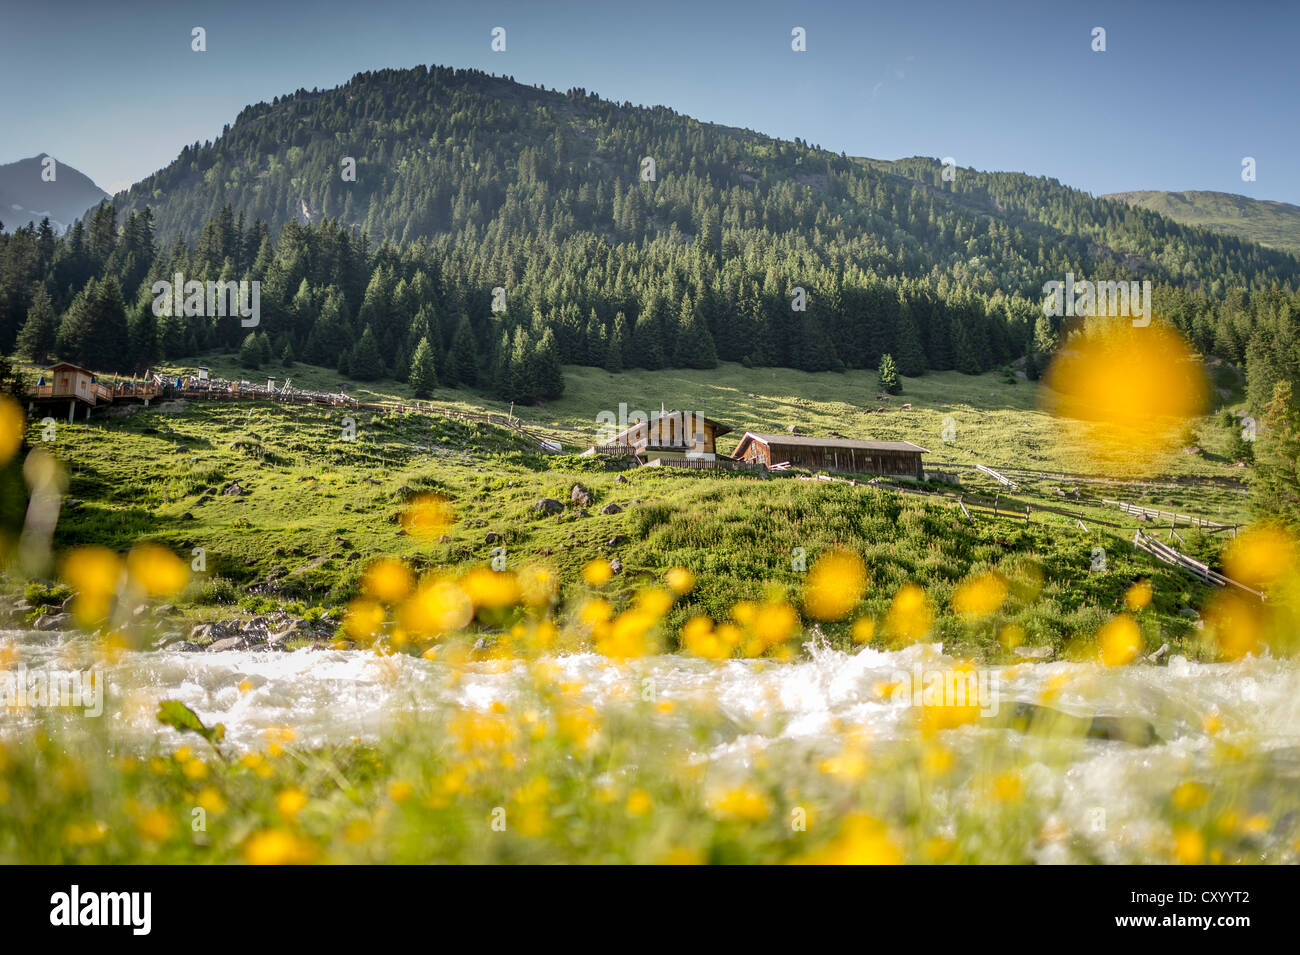 Buttercups (Ranunculus) in front of a mountain stream, mountain guesthouse at back, Grawa Alm, mountain pasture, - Stock Image